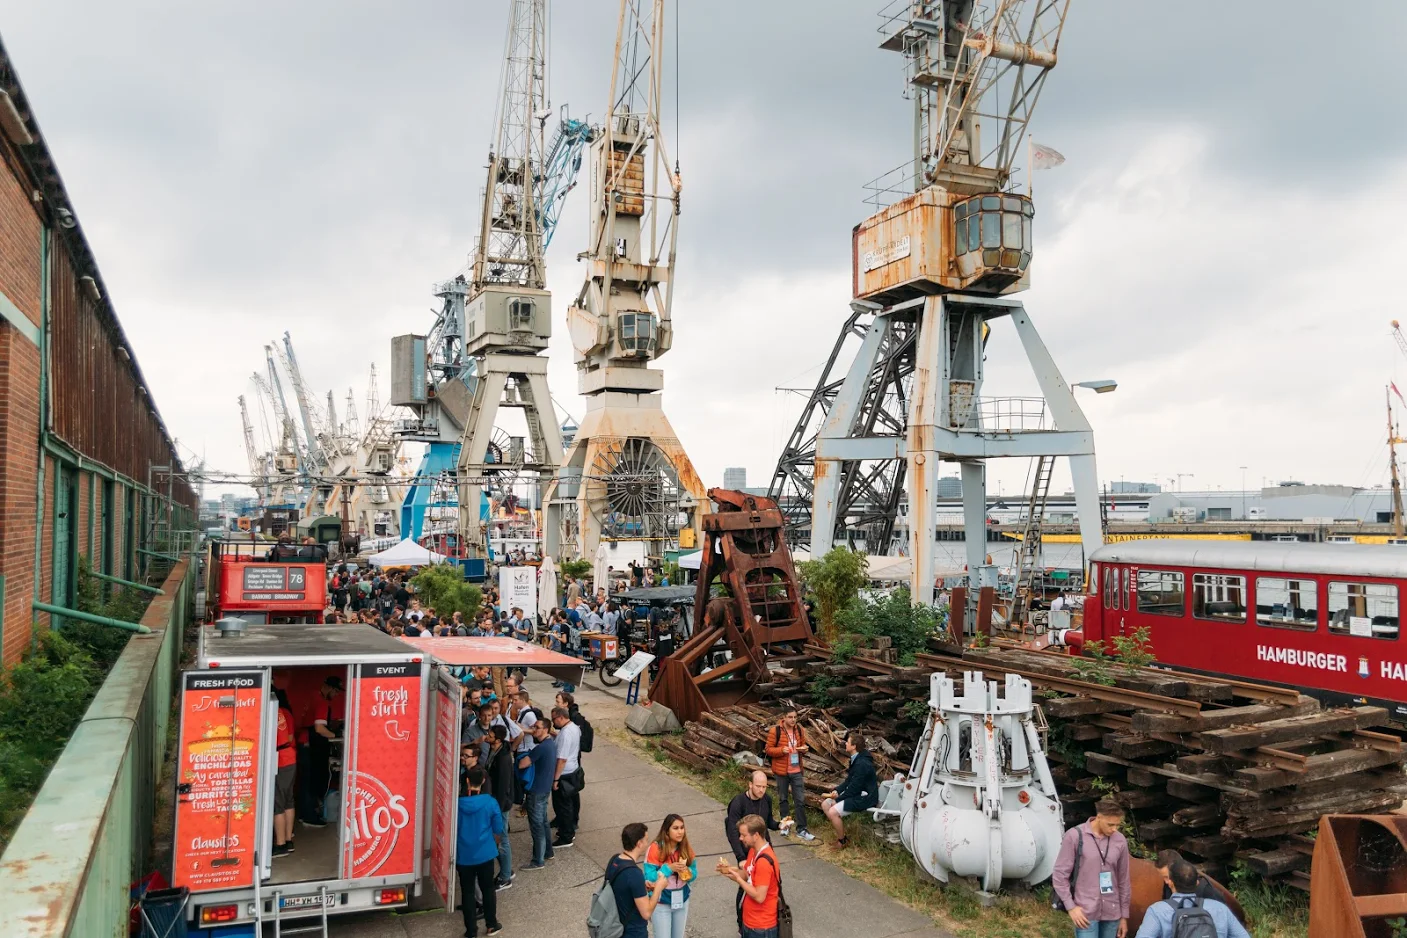 ContainerDays Hamburg Recap: 3 Days Full of Container Craziness front image